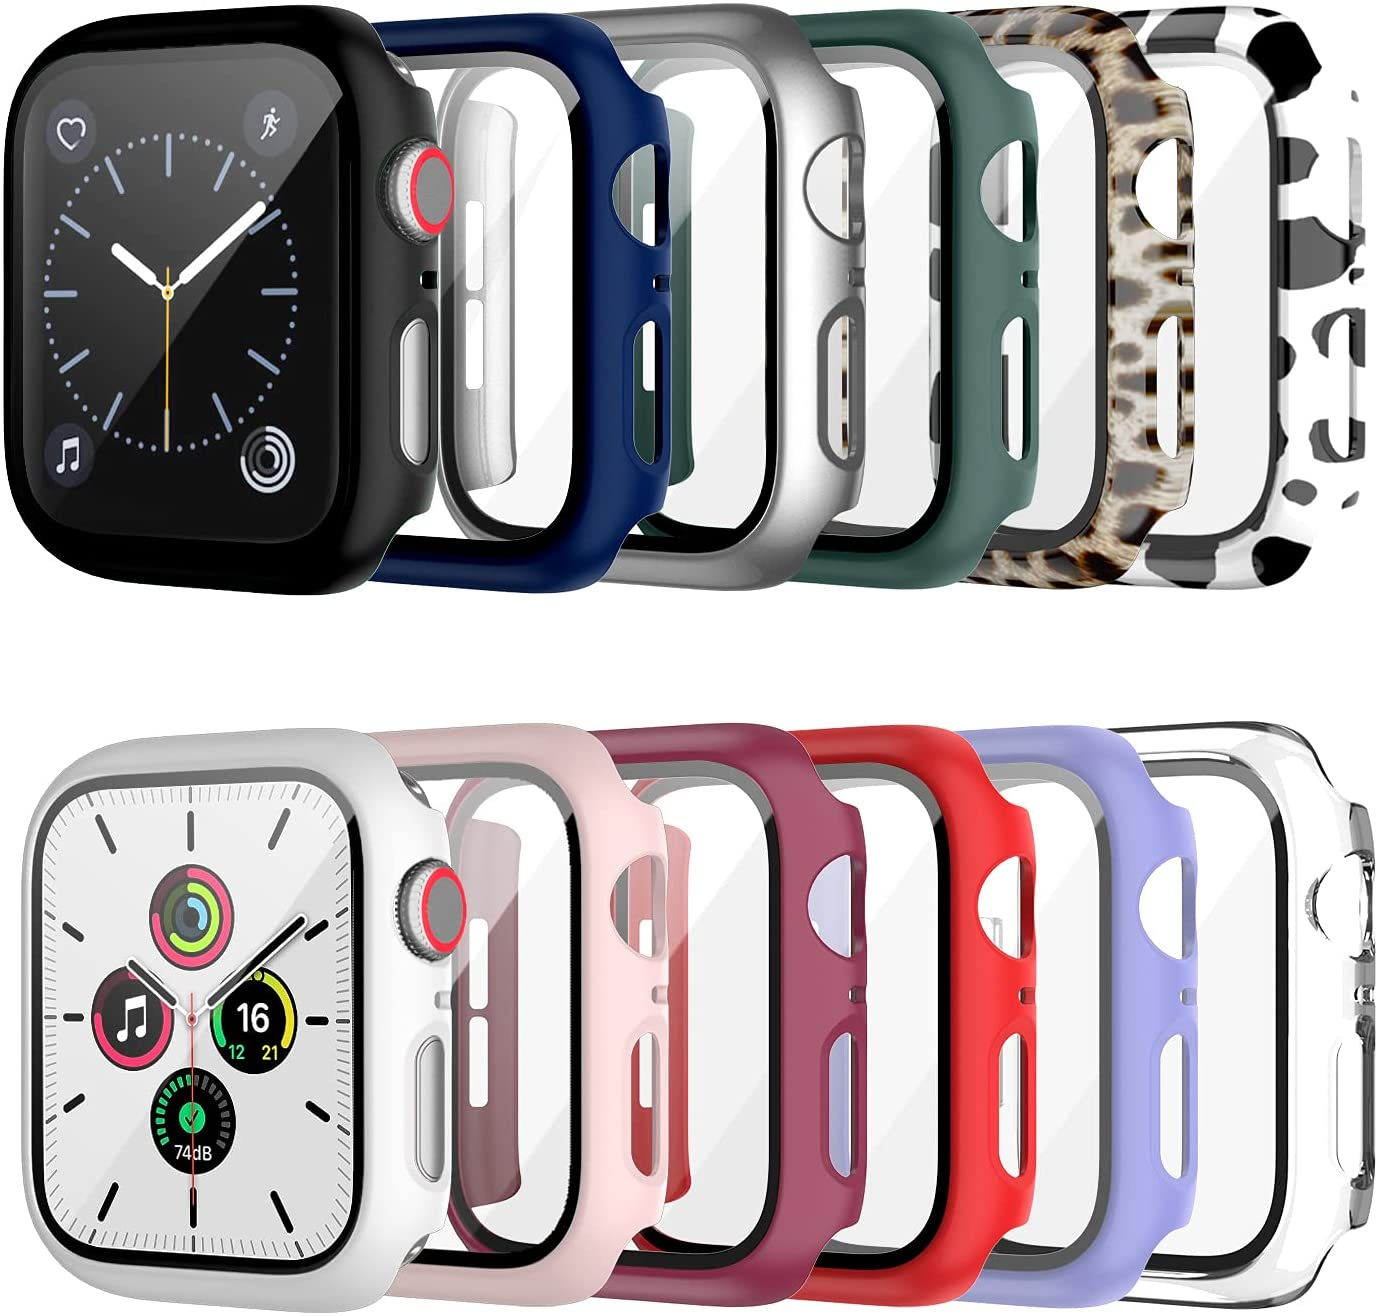 12 Pack Case with Tempered Glass Screen Protector for Apple Watch 40mm Series 6/SE/Series 5/Series 4, Cuteey Full Mate Leopord Cow Pattern PC Cover for Iwatch 40mm Accessories (12 Colors, 40mm)